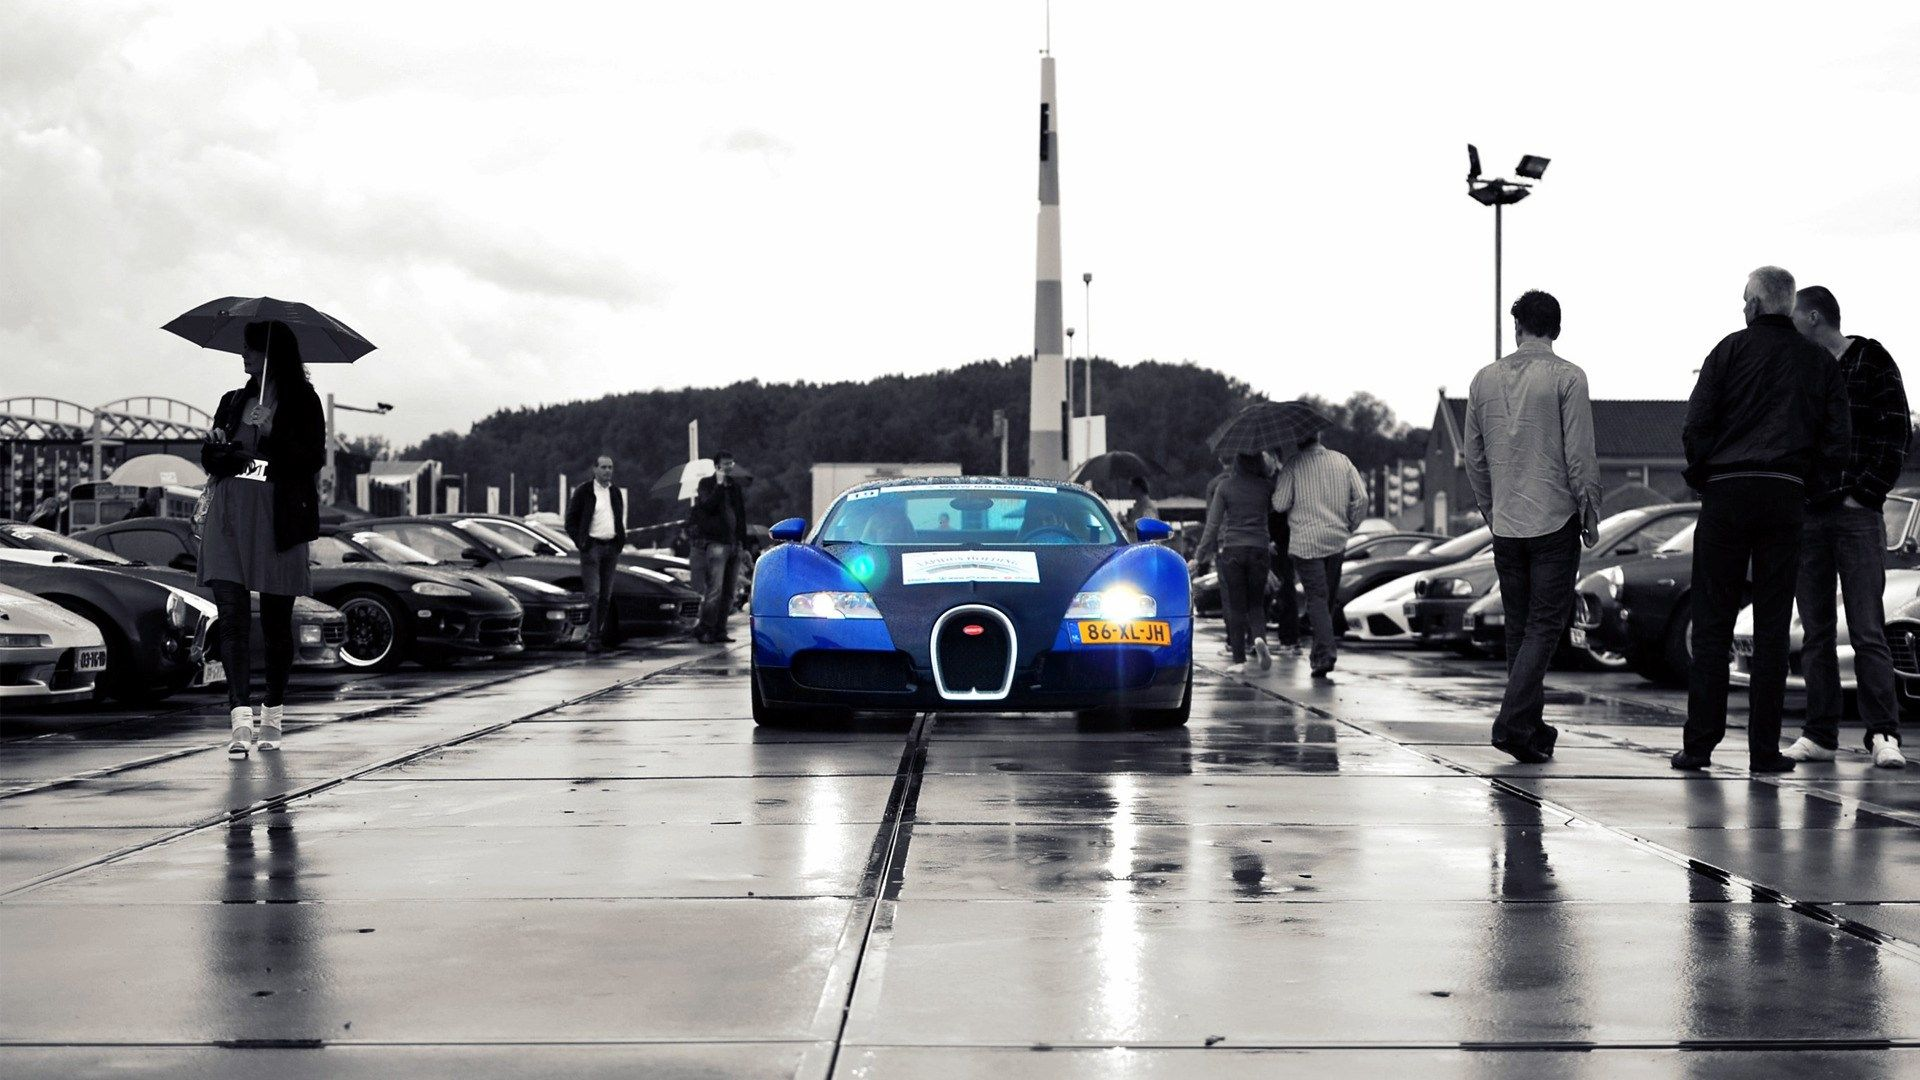 6c4b5f98f57c7da8bb3578830bc1a0b9 Exciting Bugatti Veyron Cost for Oil Change Cars Trend